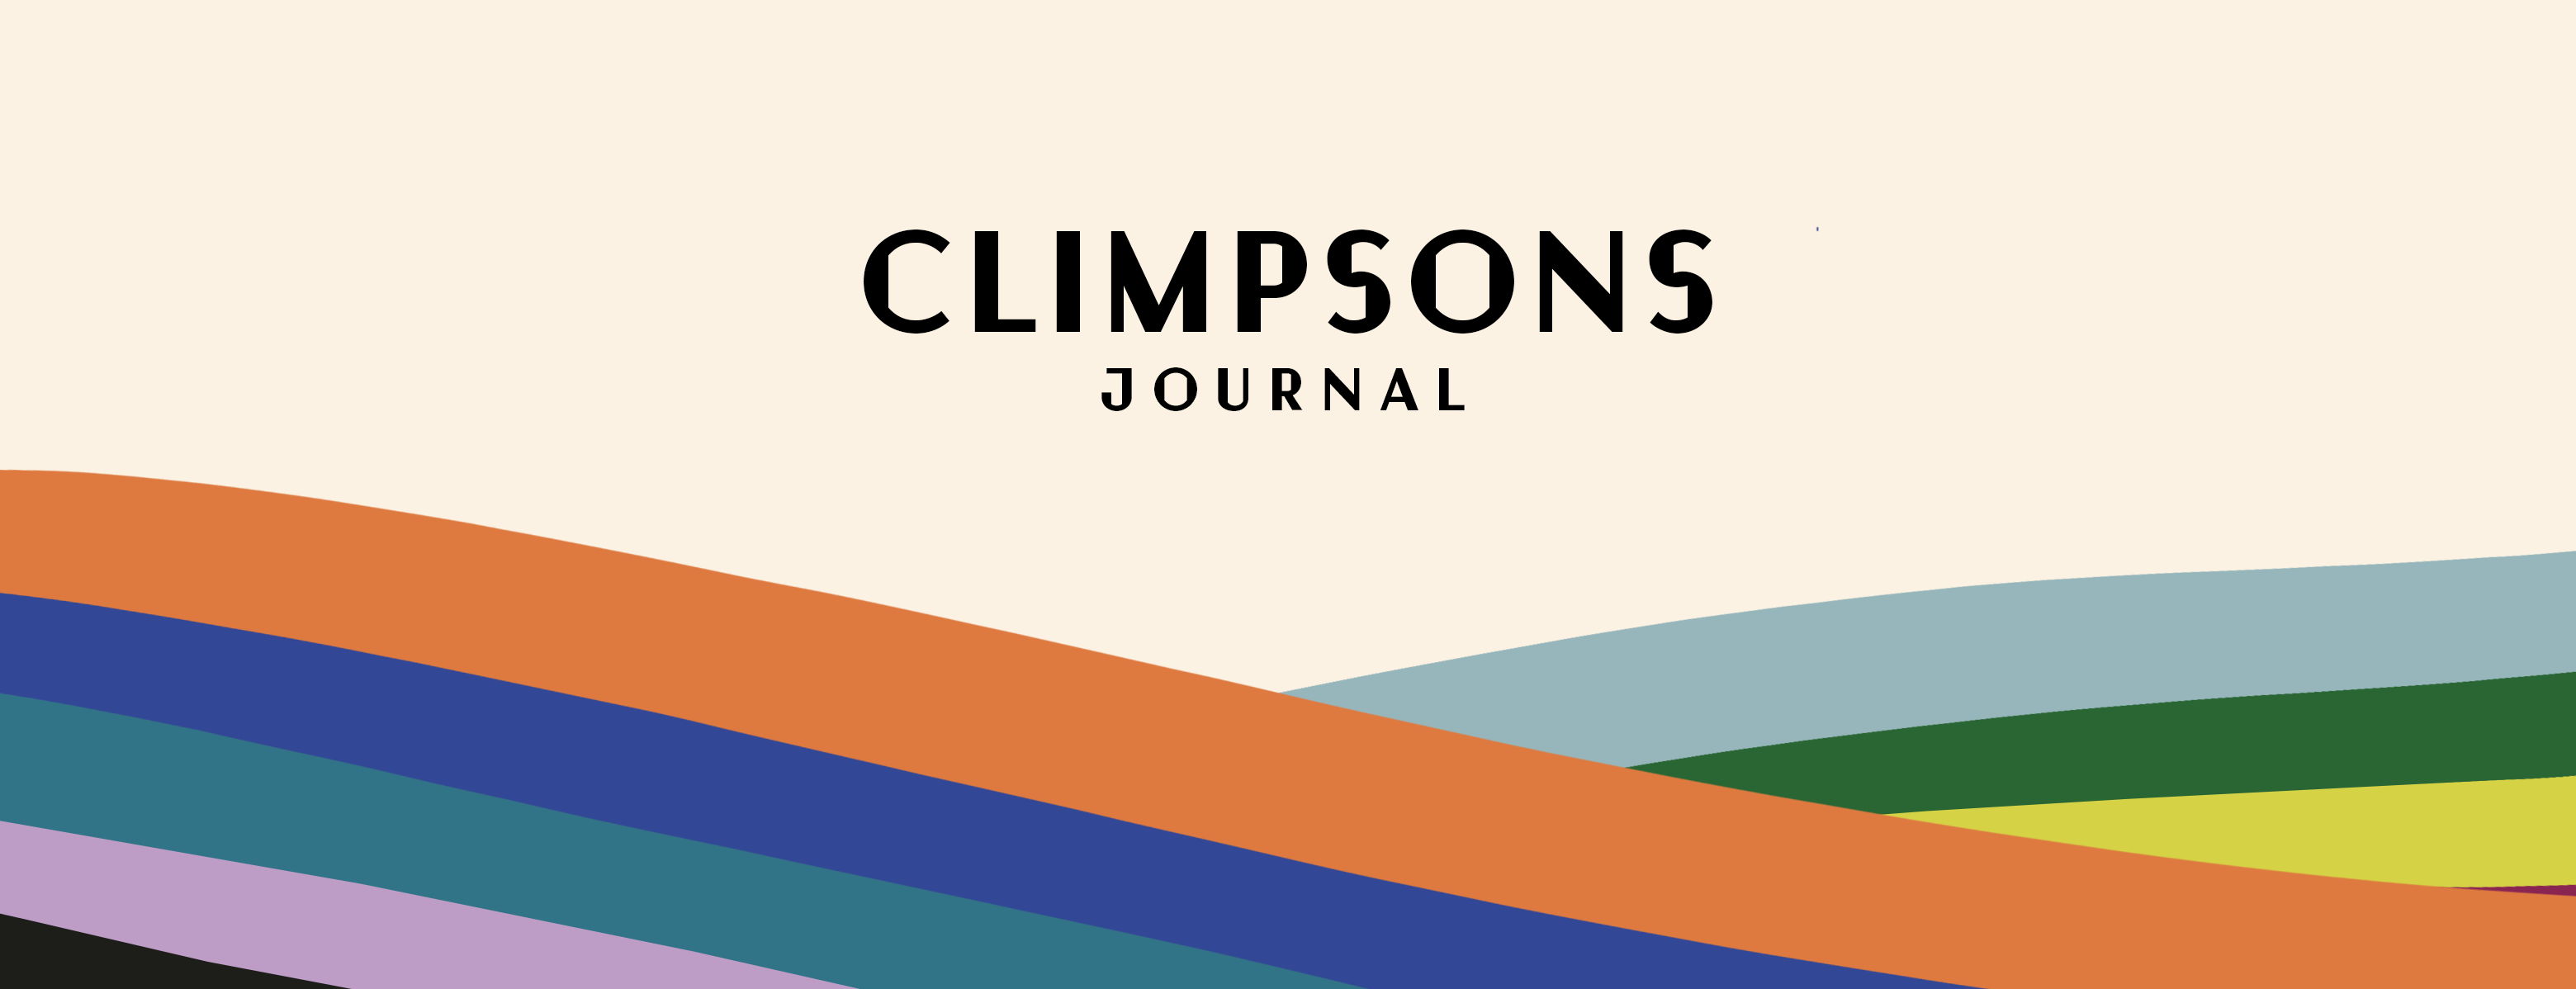 Climpsons Journal